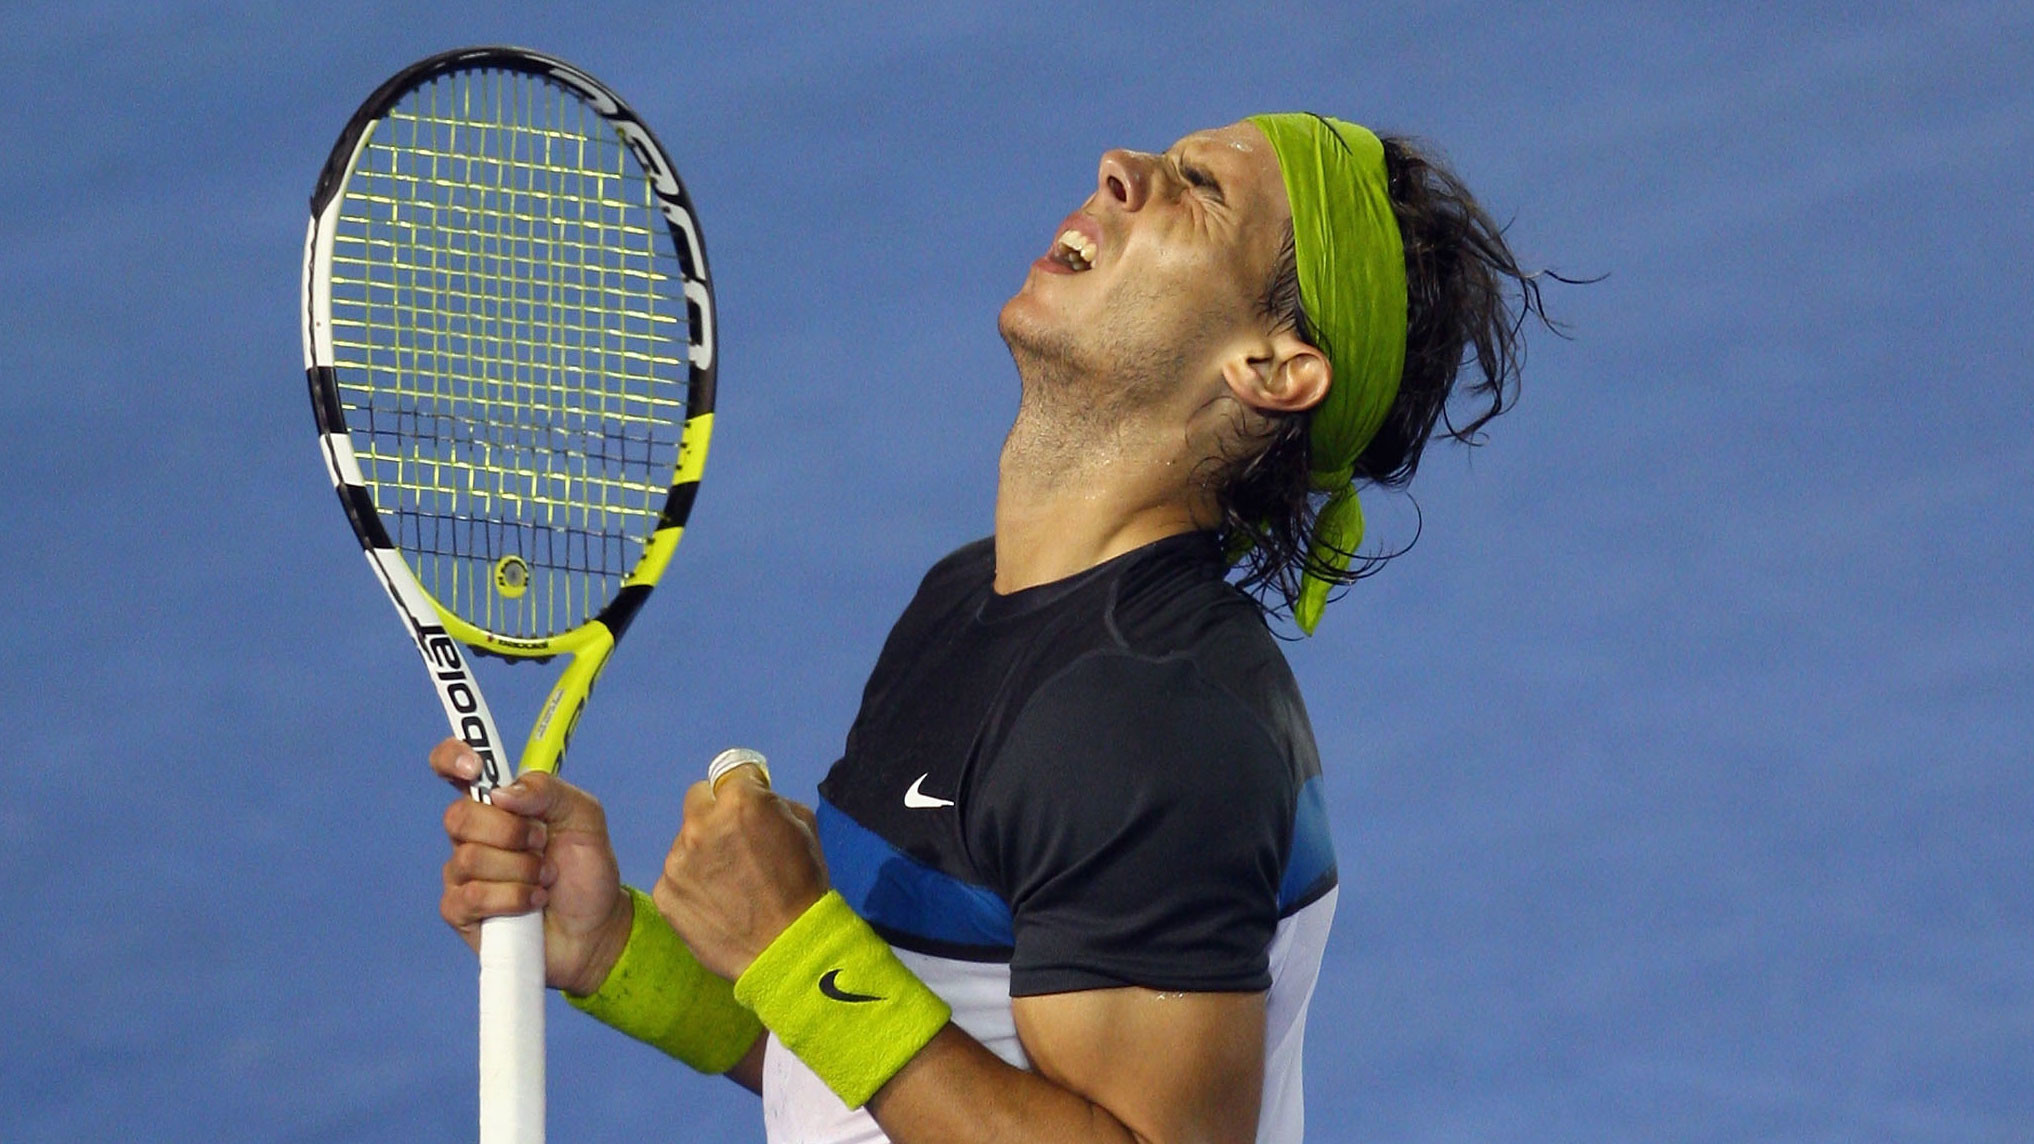 Tennis-HD-Wallpapers Free Download